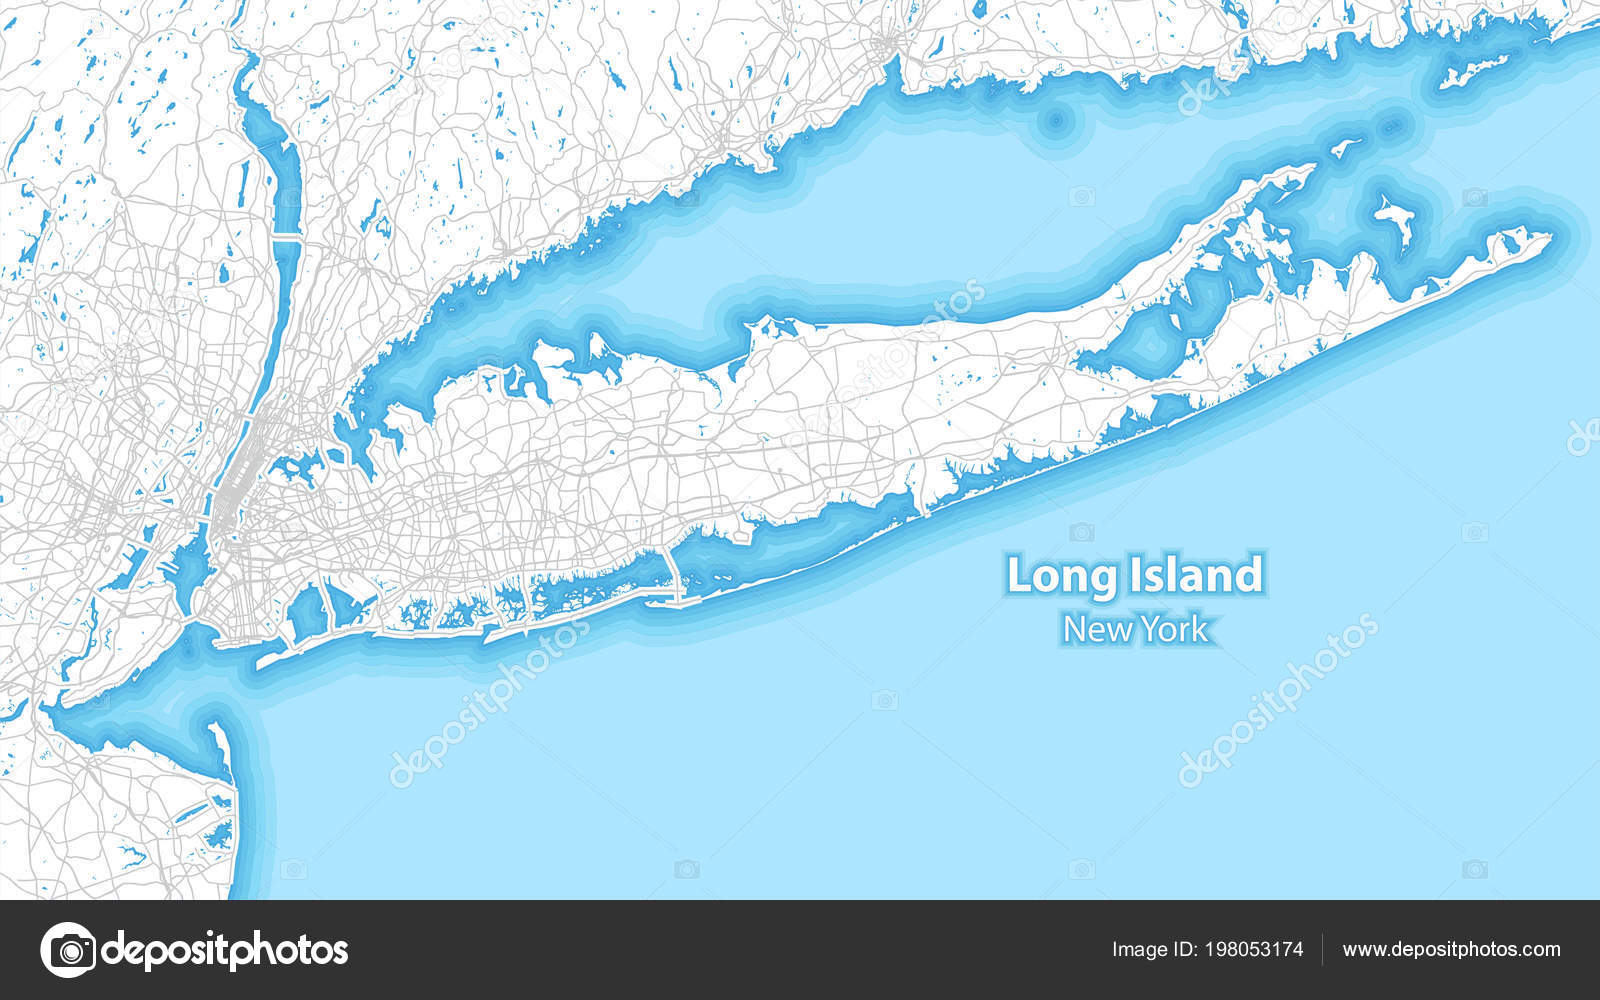 Two Toned Map Long Island New York Largest Highways Roads ... on the bronx, long island map showing towns, suffolk county long island map, long island wantagh, antique long island map, long island herricks, new york map, new york city, nassau county, long island rail map, long island lirr map, washington dc map, long island buffalo, nassau county long island map, new york metropolitan area, suffolk county, long island new york, staten island, long island map view, long island sound, coney island, long island town names, long island bronx map, long island railroad map, long island connecticut map, times square, battle of long island, long beach, long island potato fields, long island boston map, ellis island, north shore long island map, hudson river, brooklyn bridge,